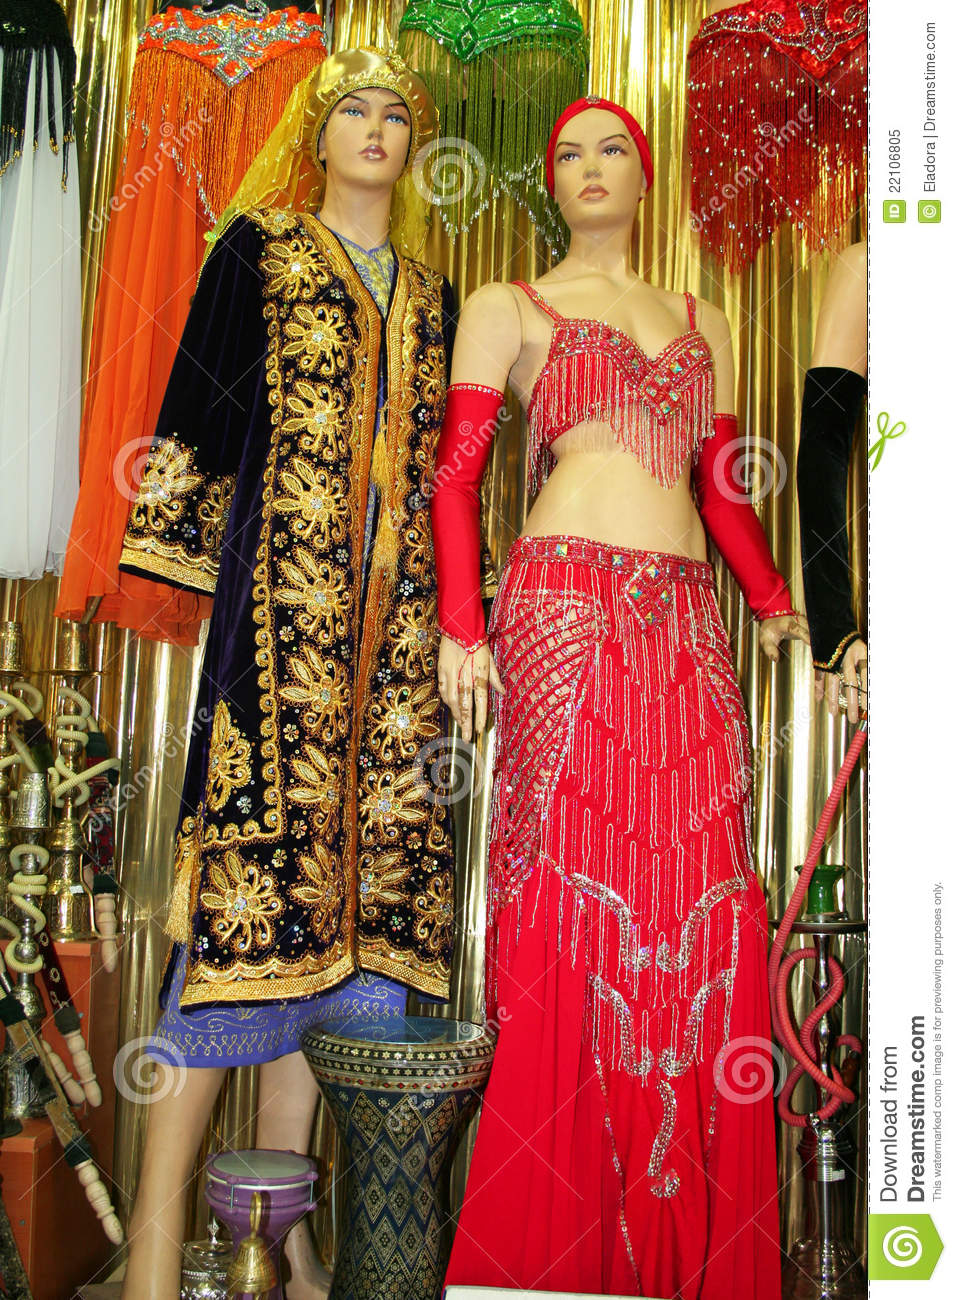 traditional clothes royalty free stock photo